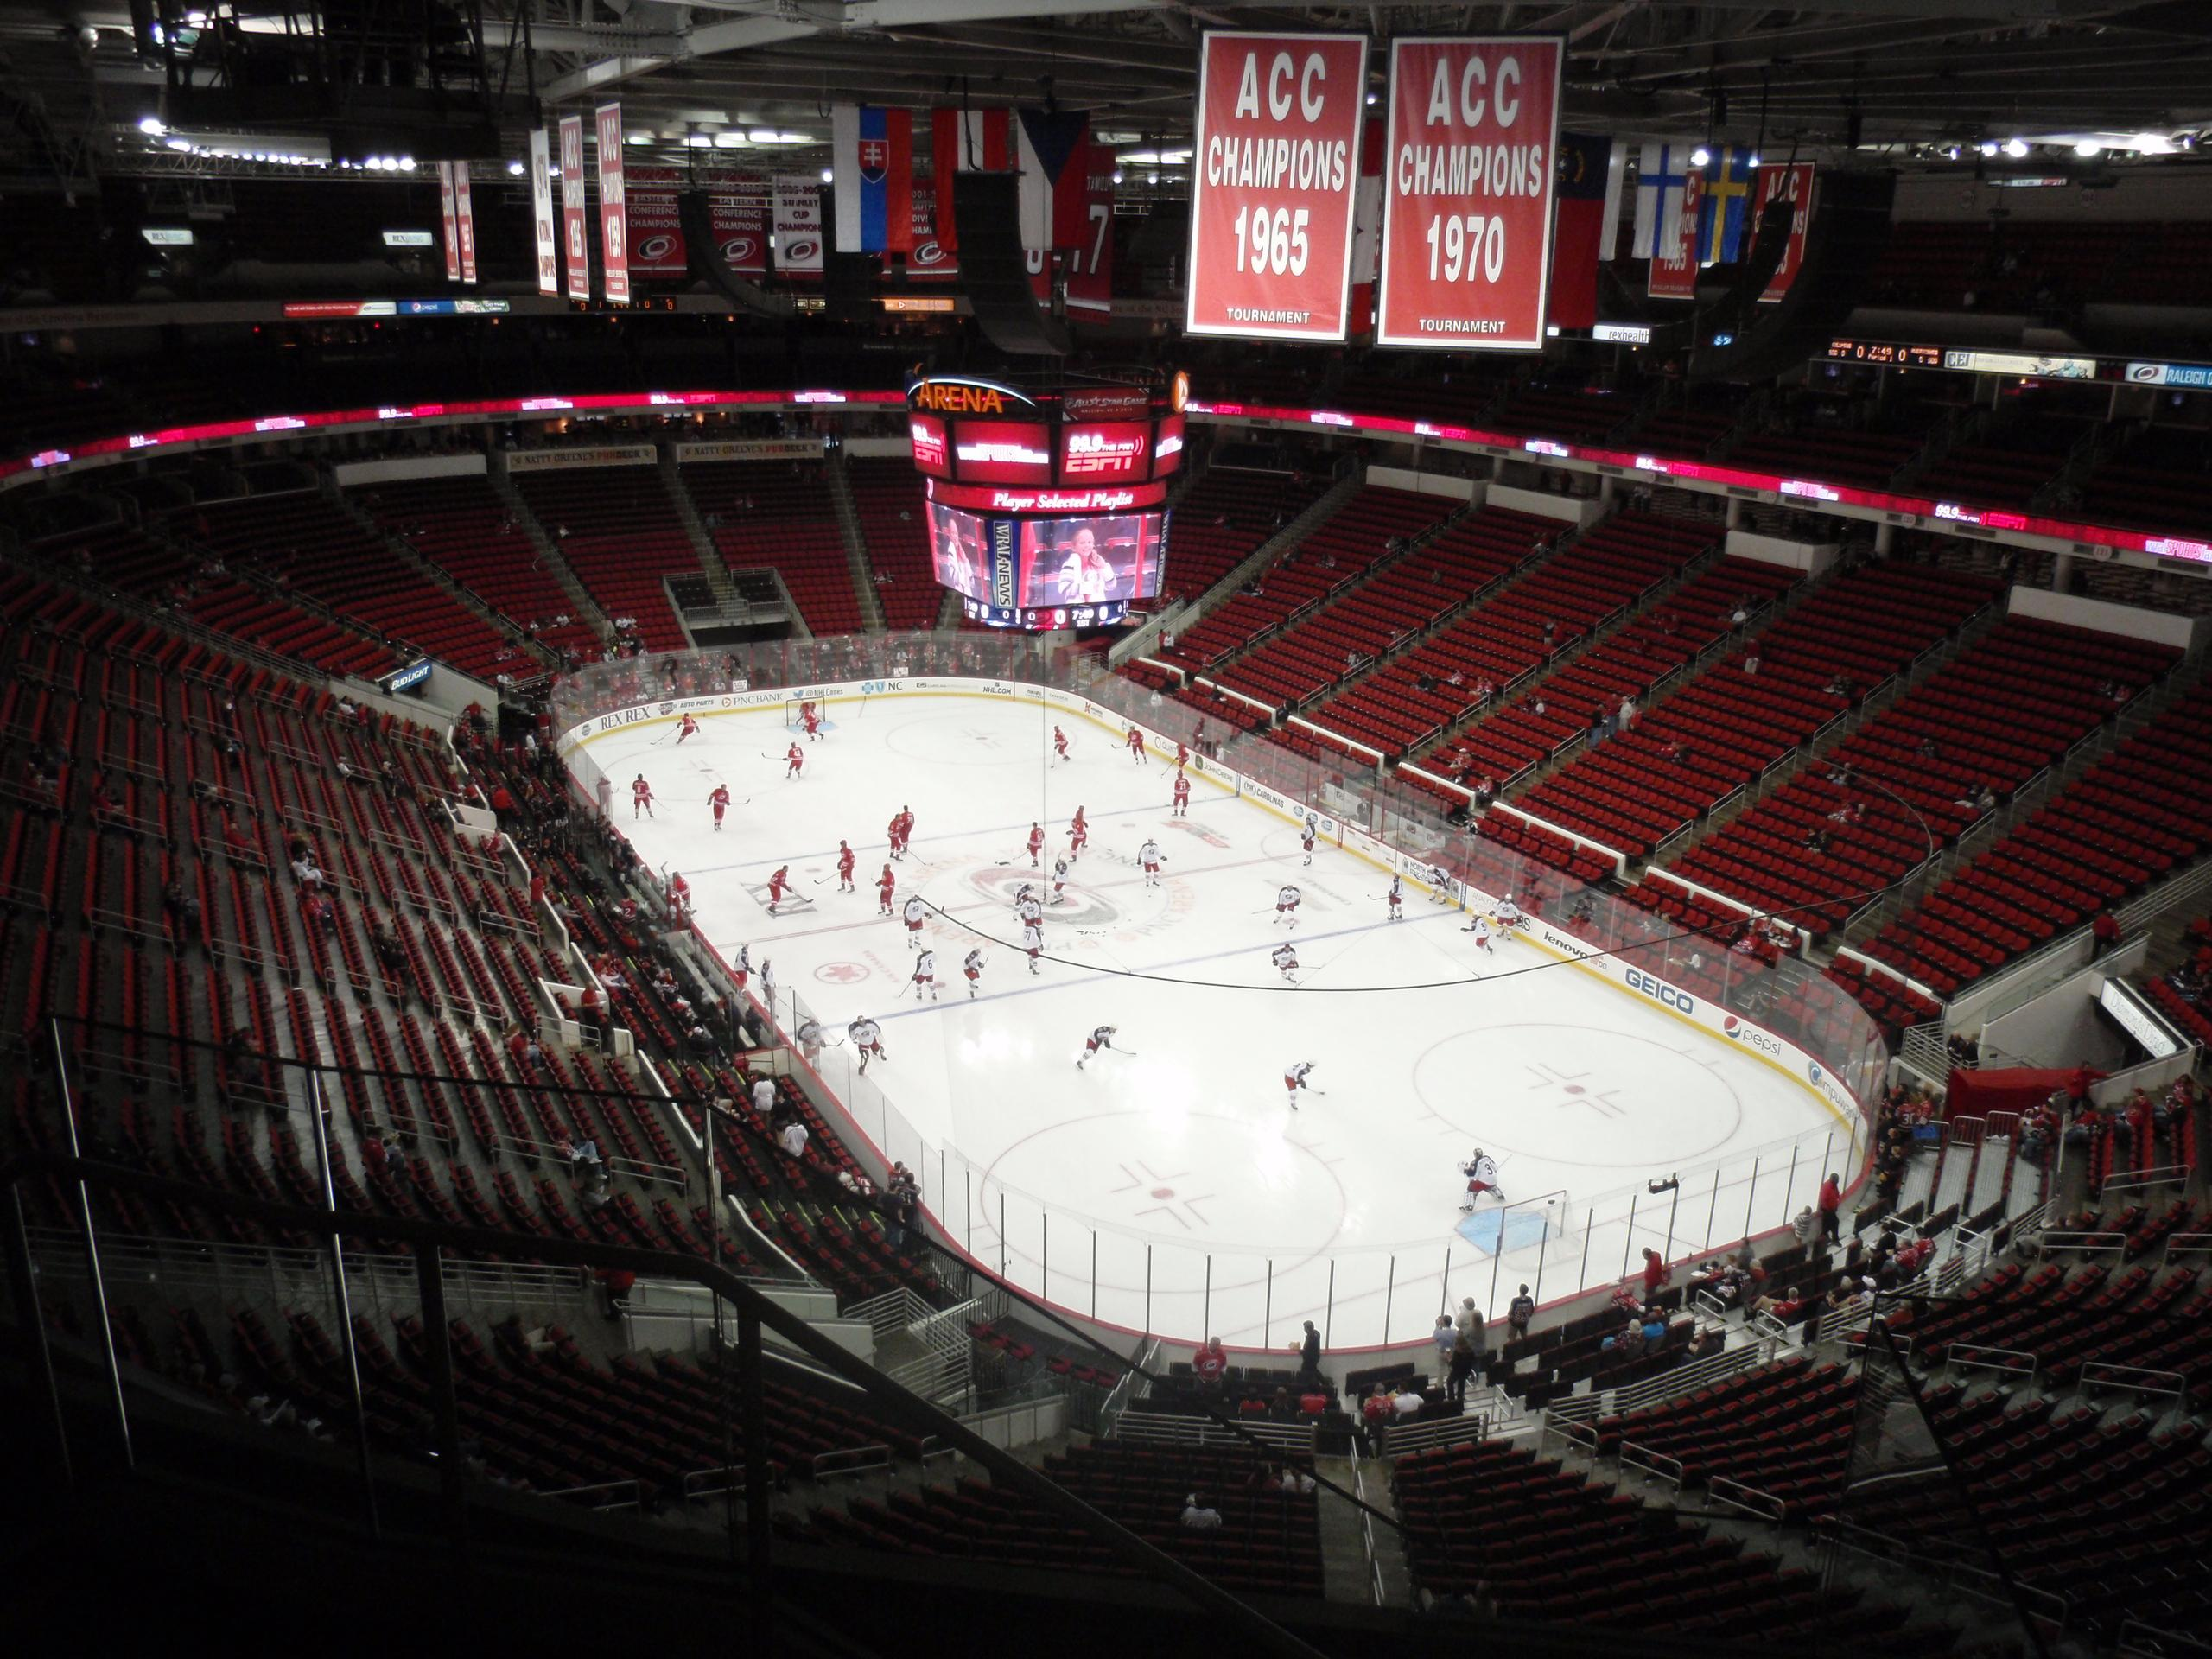 PNC Arena Section 335 Row E Seat 12